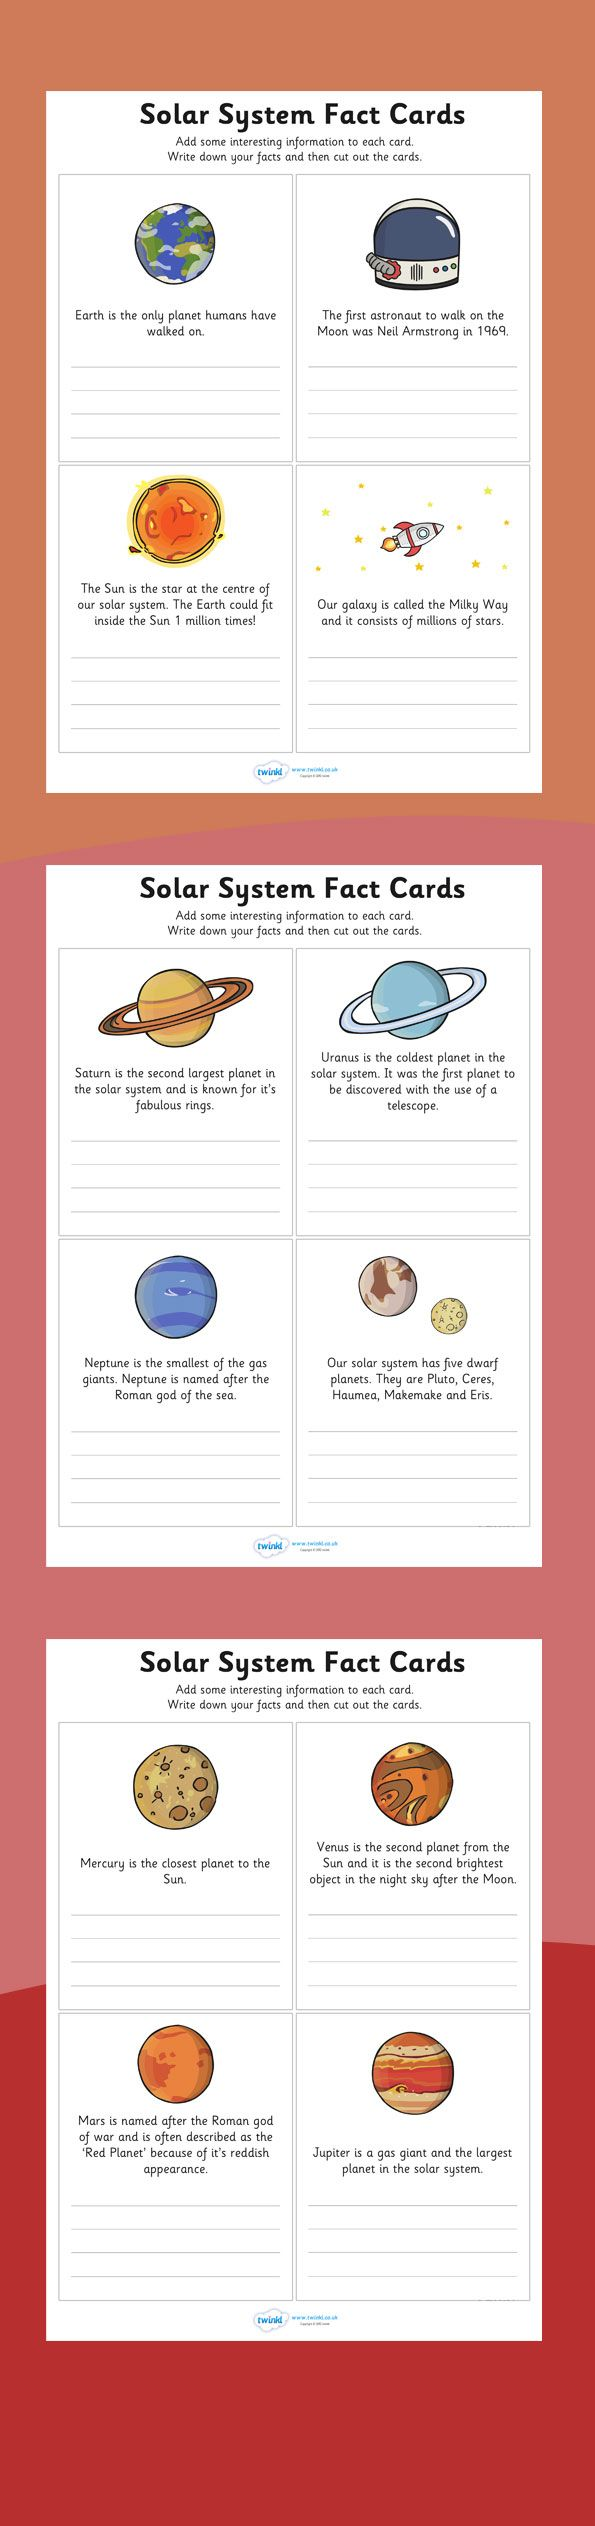 solar system fact cards - photo #3